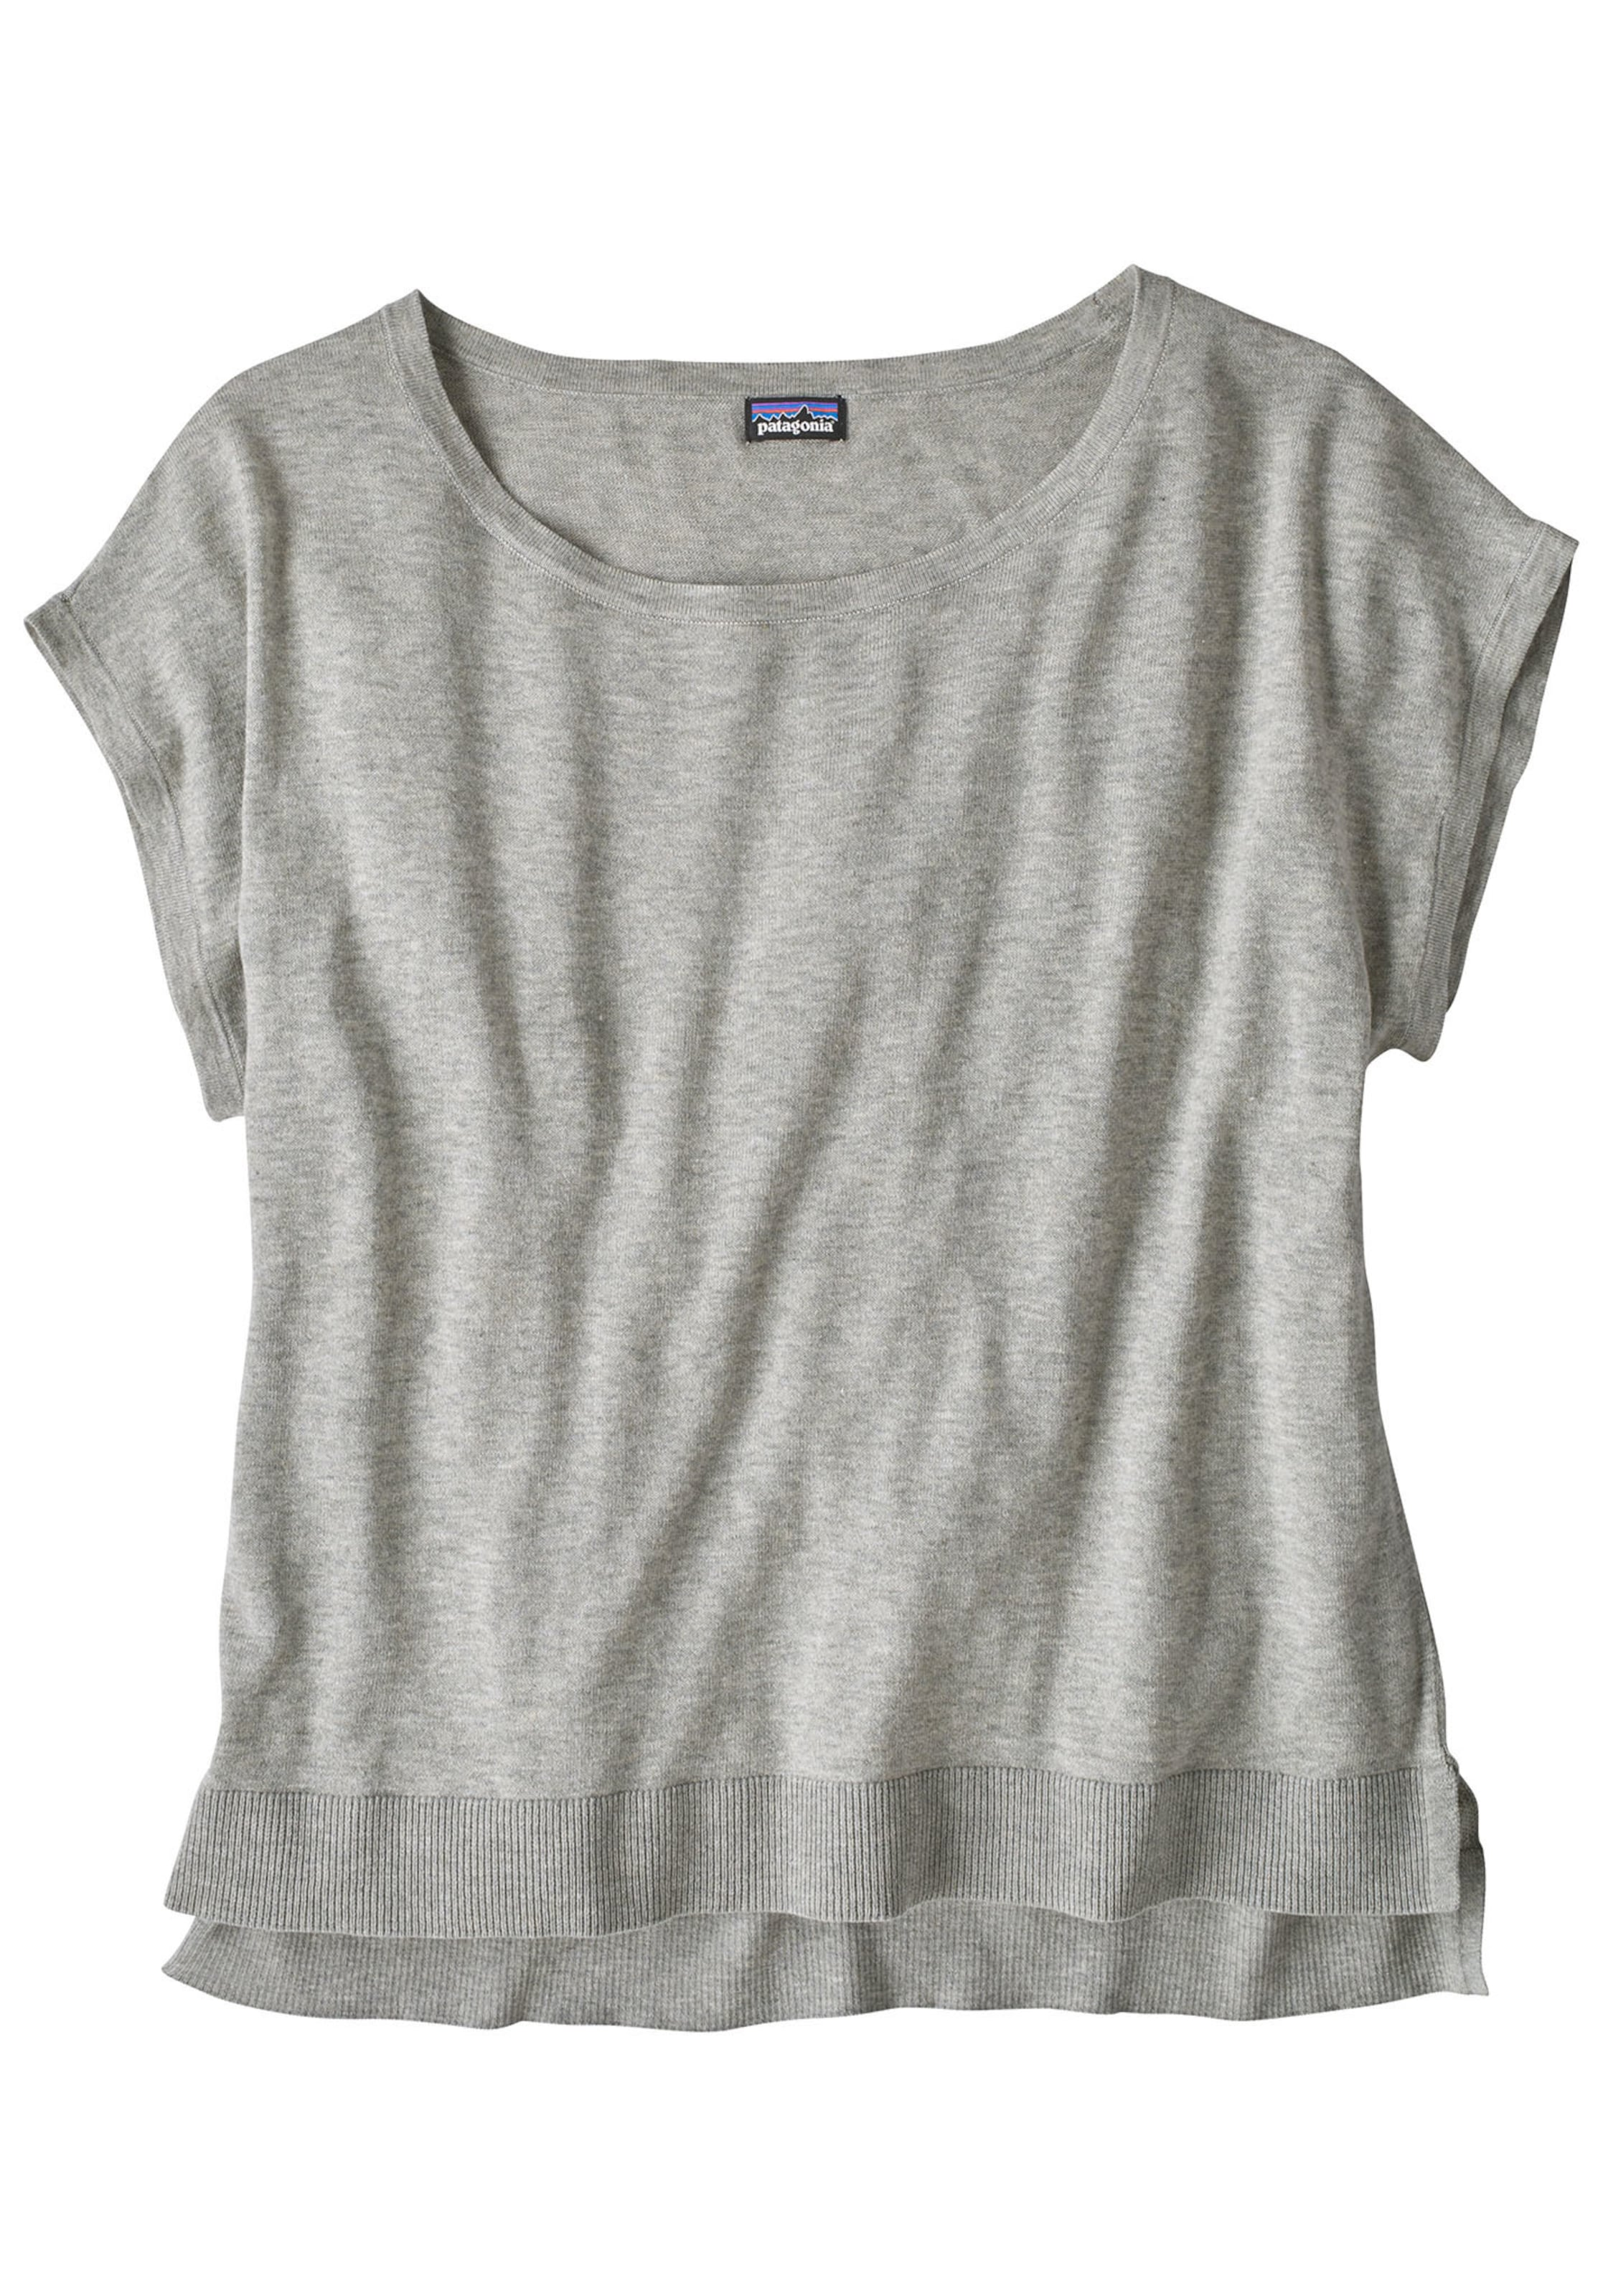 'low shirt Graumeliert Patagonia Tide' T In tsxhQdrC